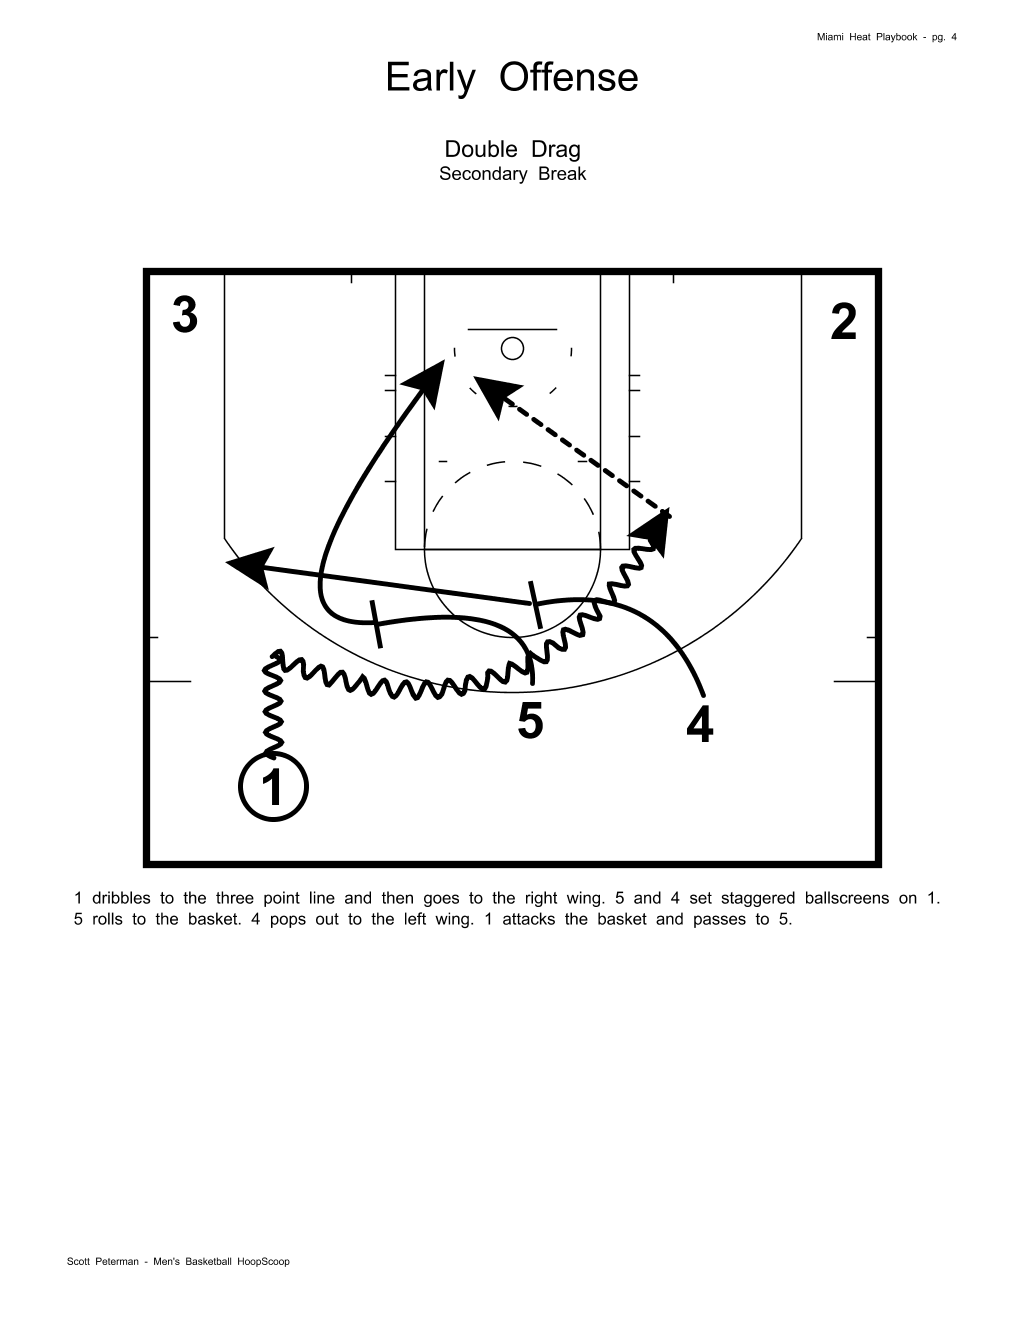 2011 NBA Miami Heat Playbook  1be06c21a